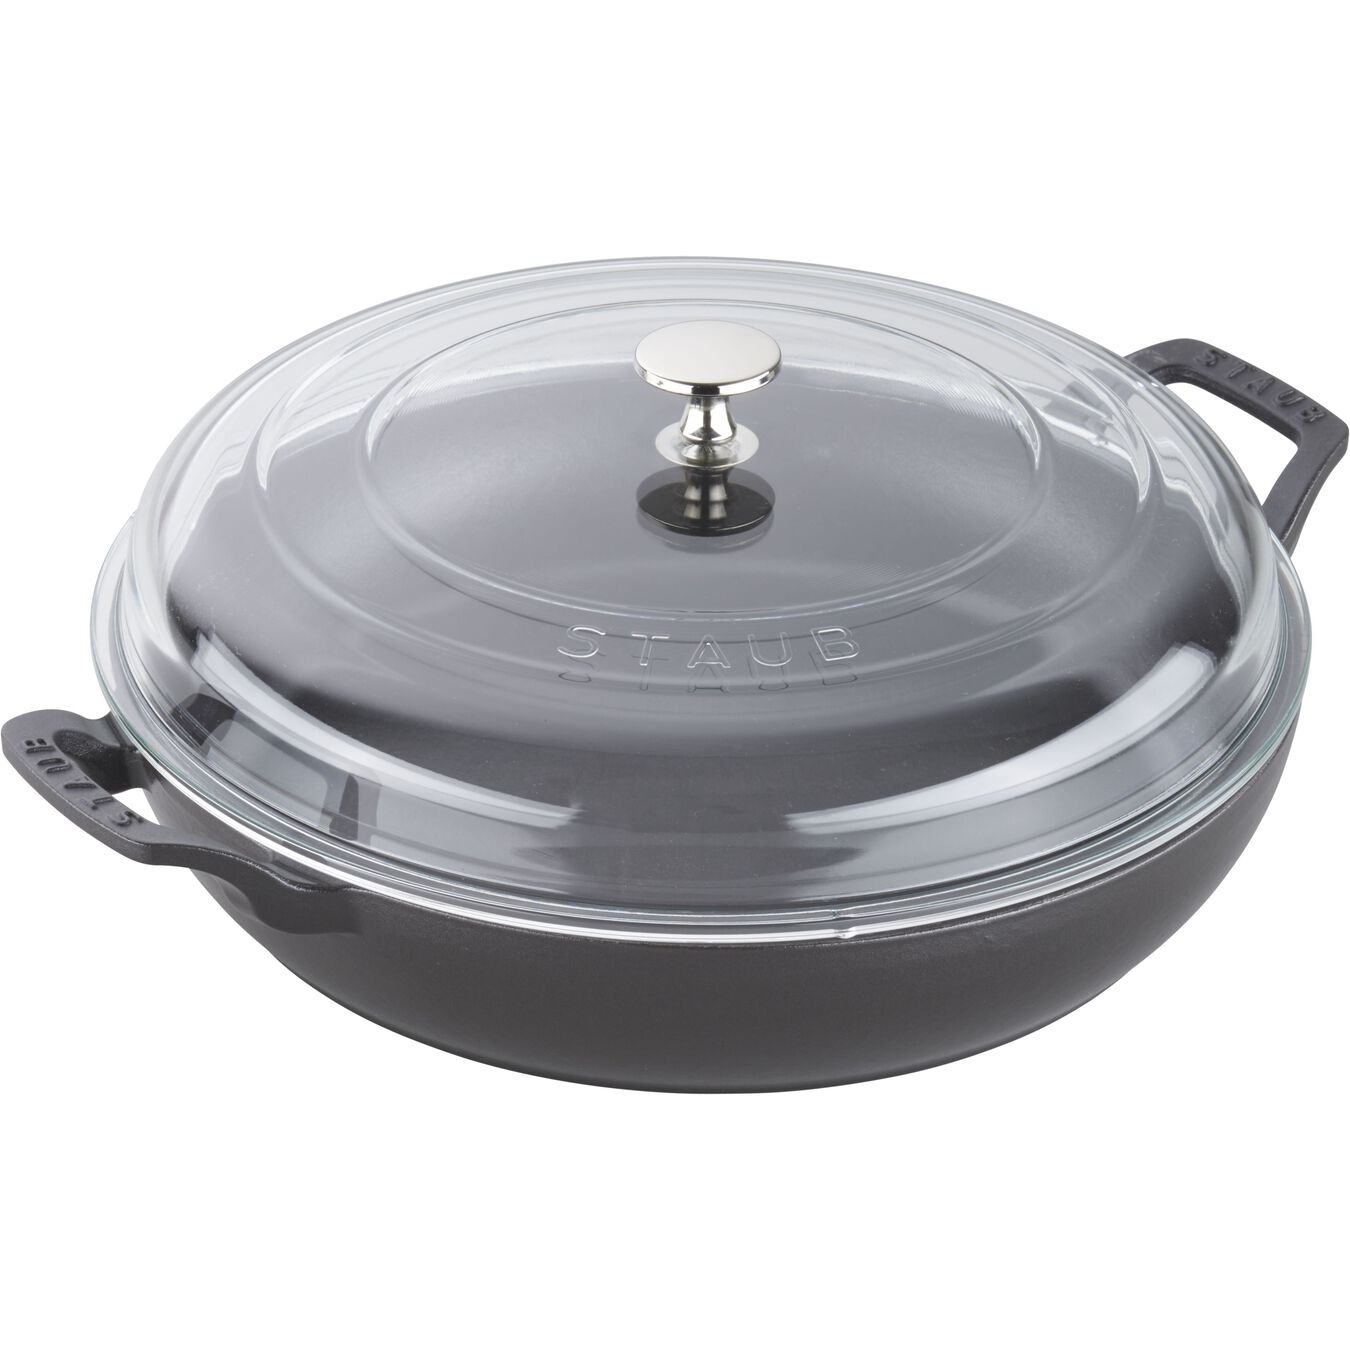 12-inch, Saute pan with glass lid, black matte,,large 2